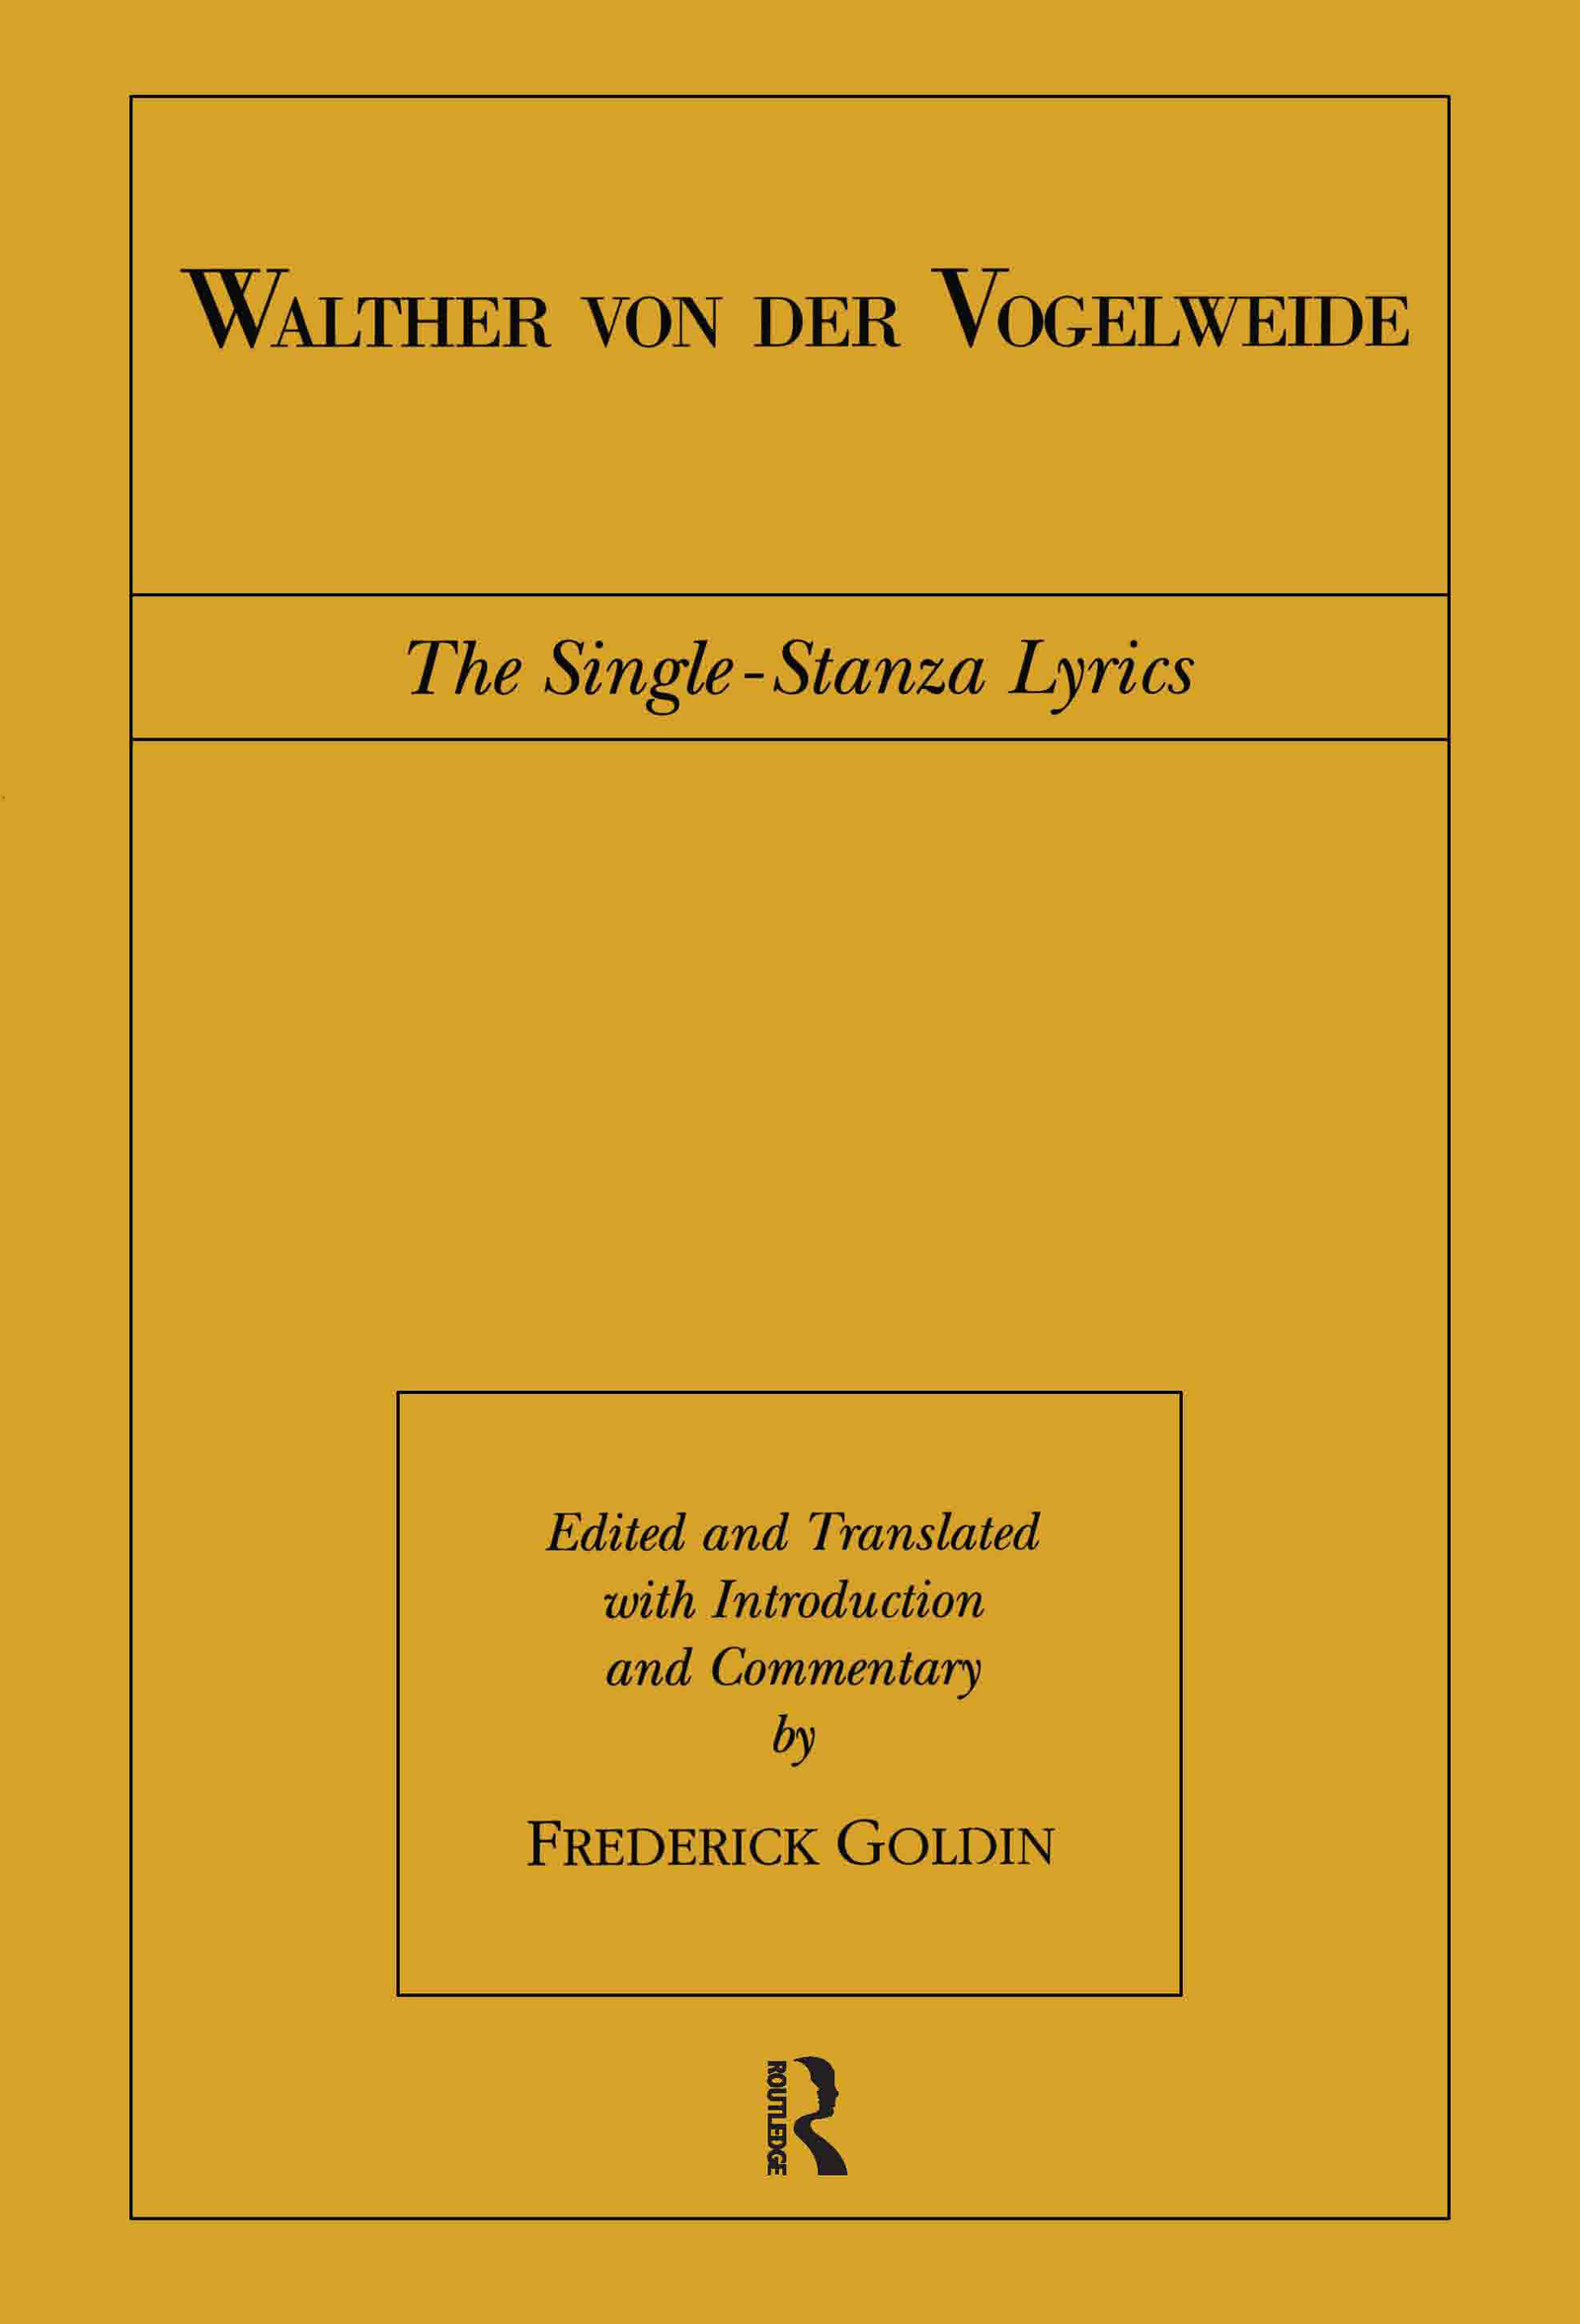 Walther von der Vogelweide: The Single-Stanza Lyrics book cover